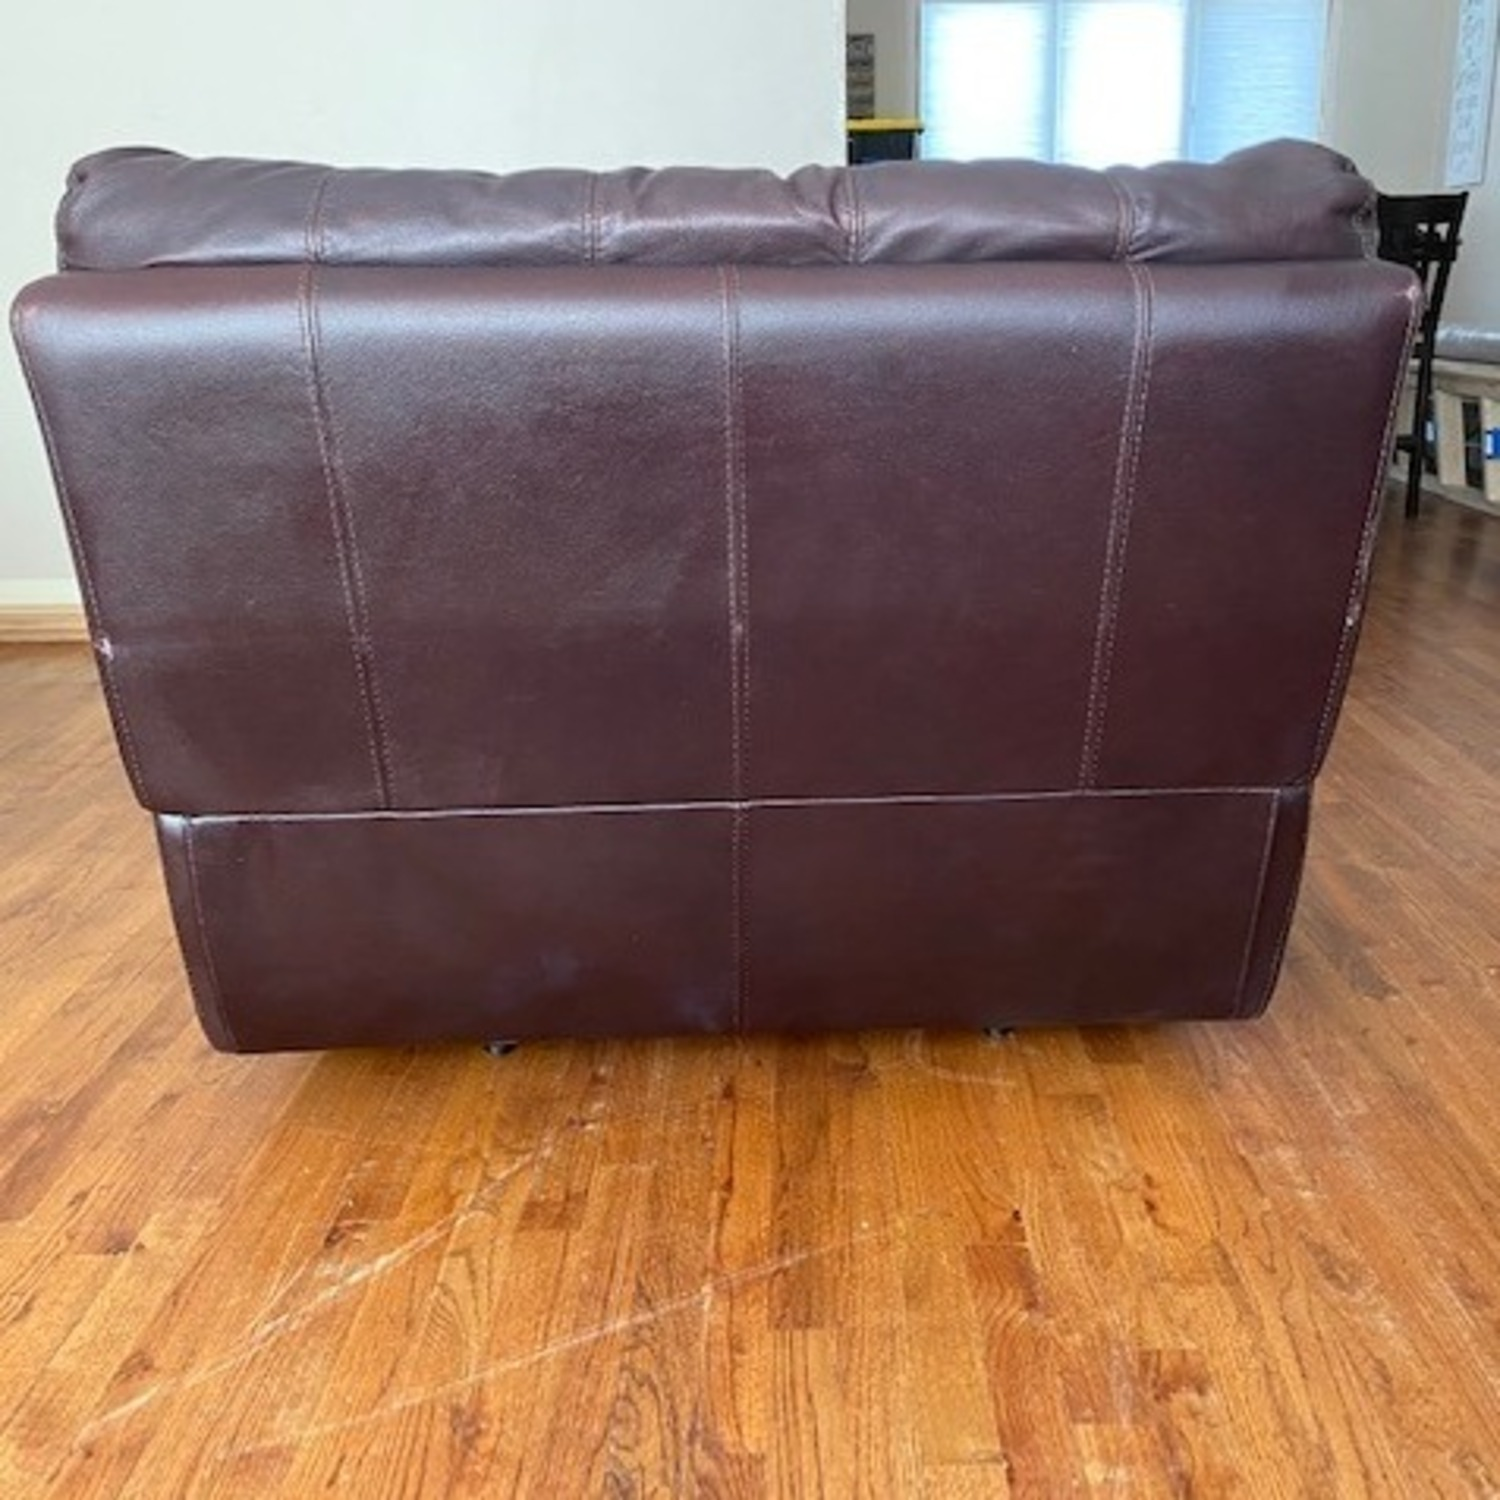 Chateau D'ax Expresso Leather Recliner Chair - image-2